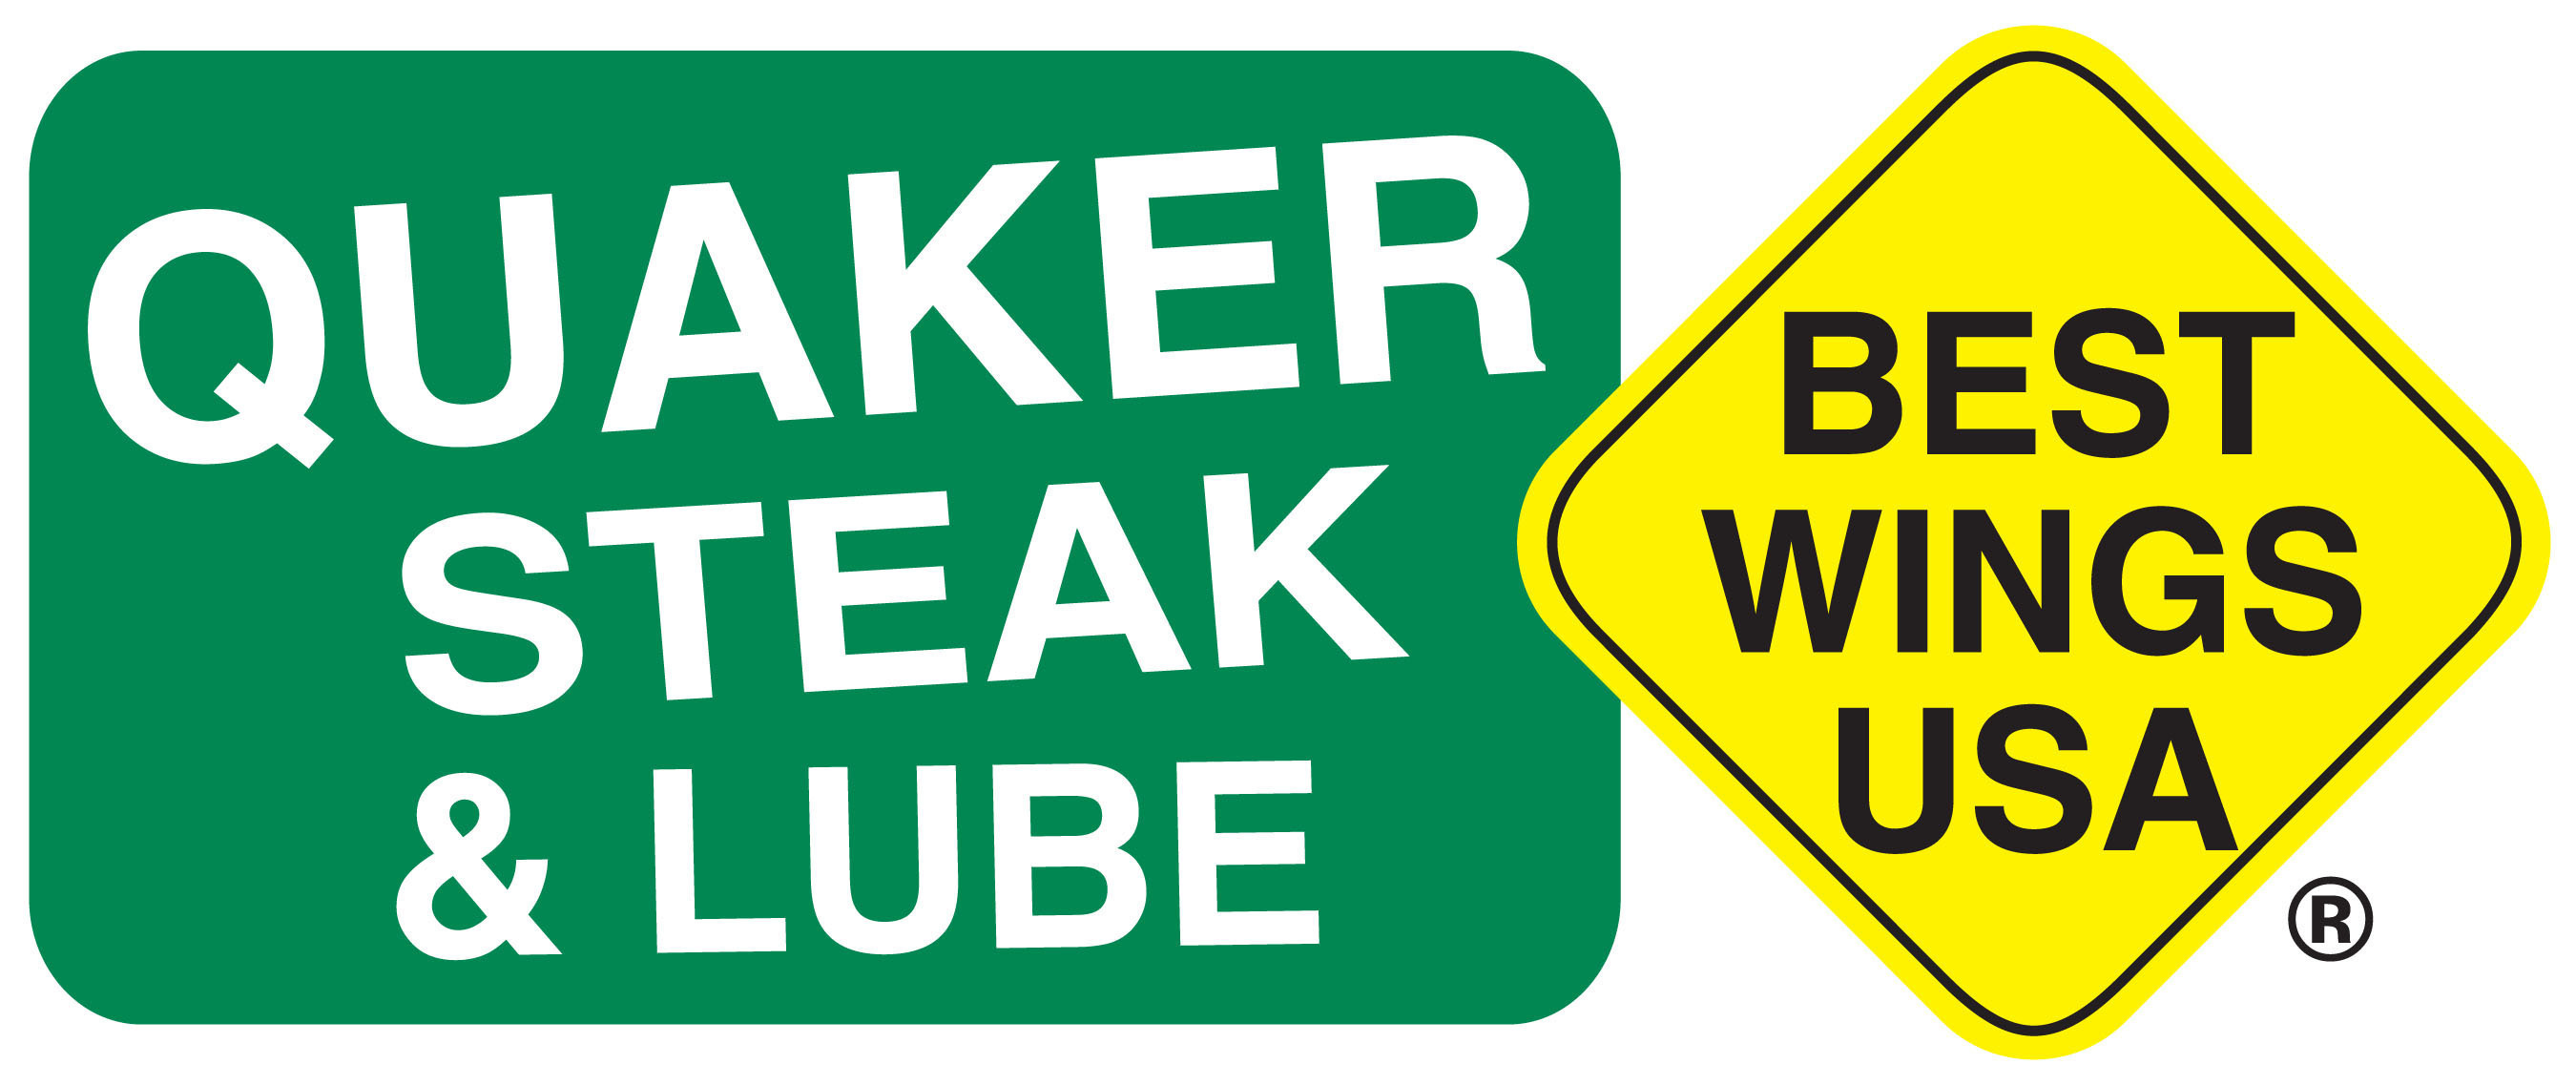 Quaker Steak & Lube company logo.